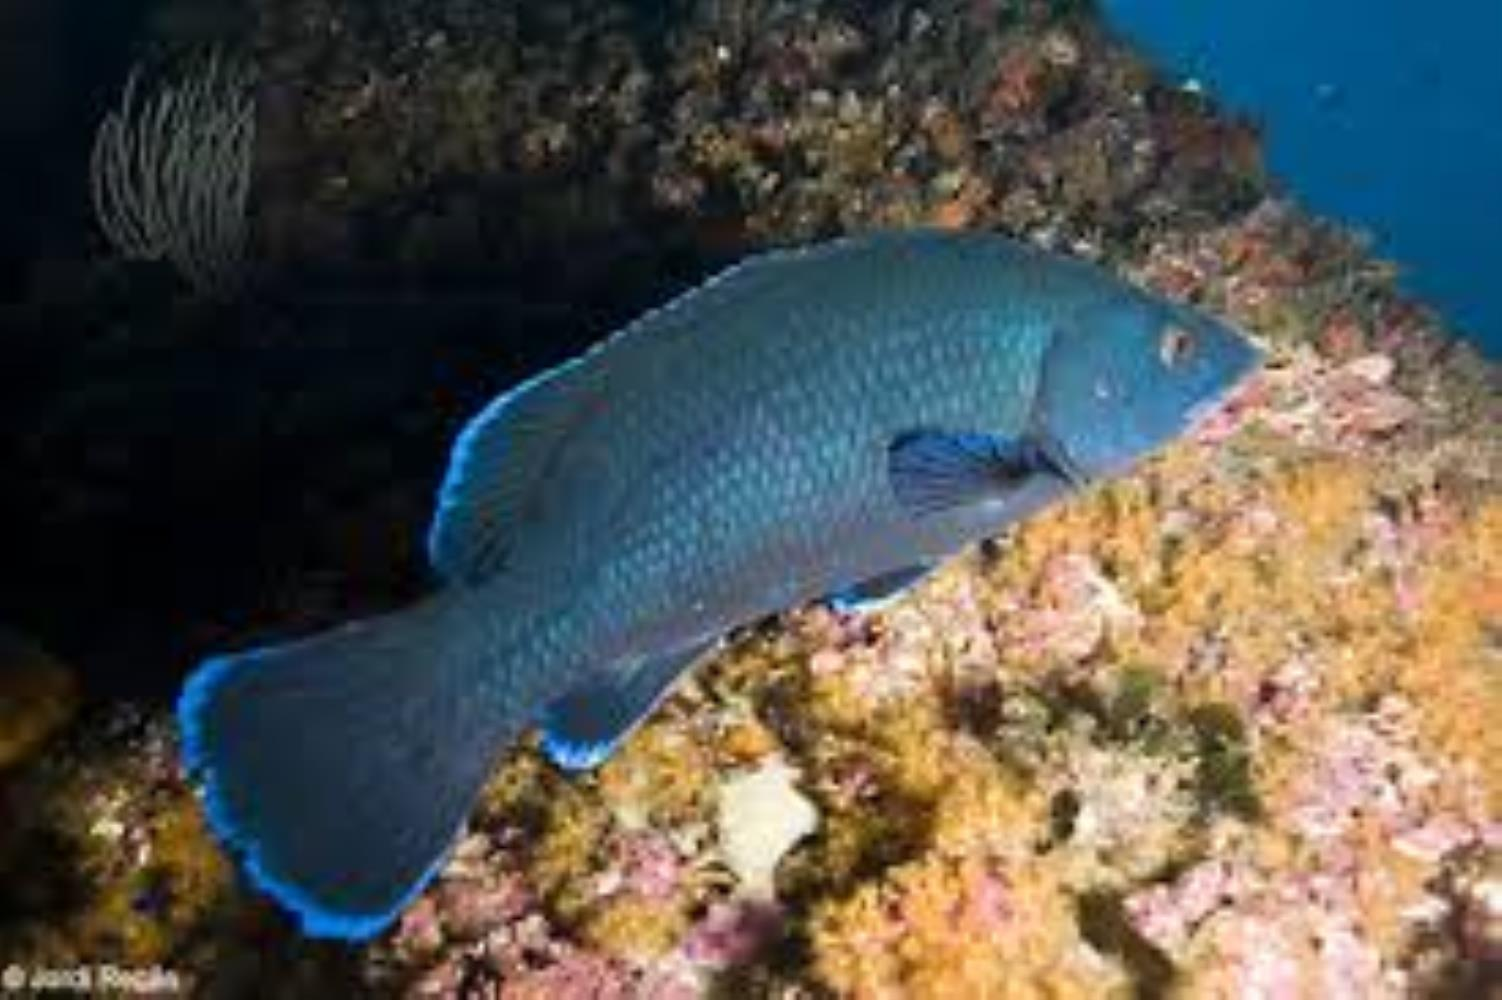 Brown Wrasse